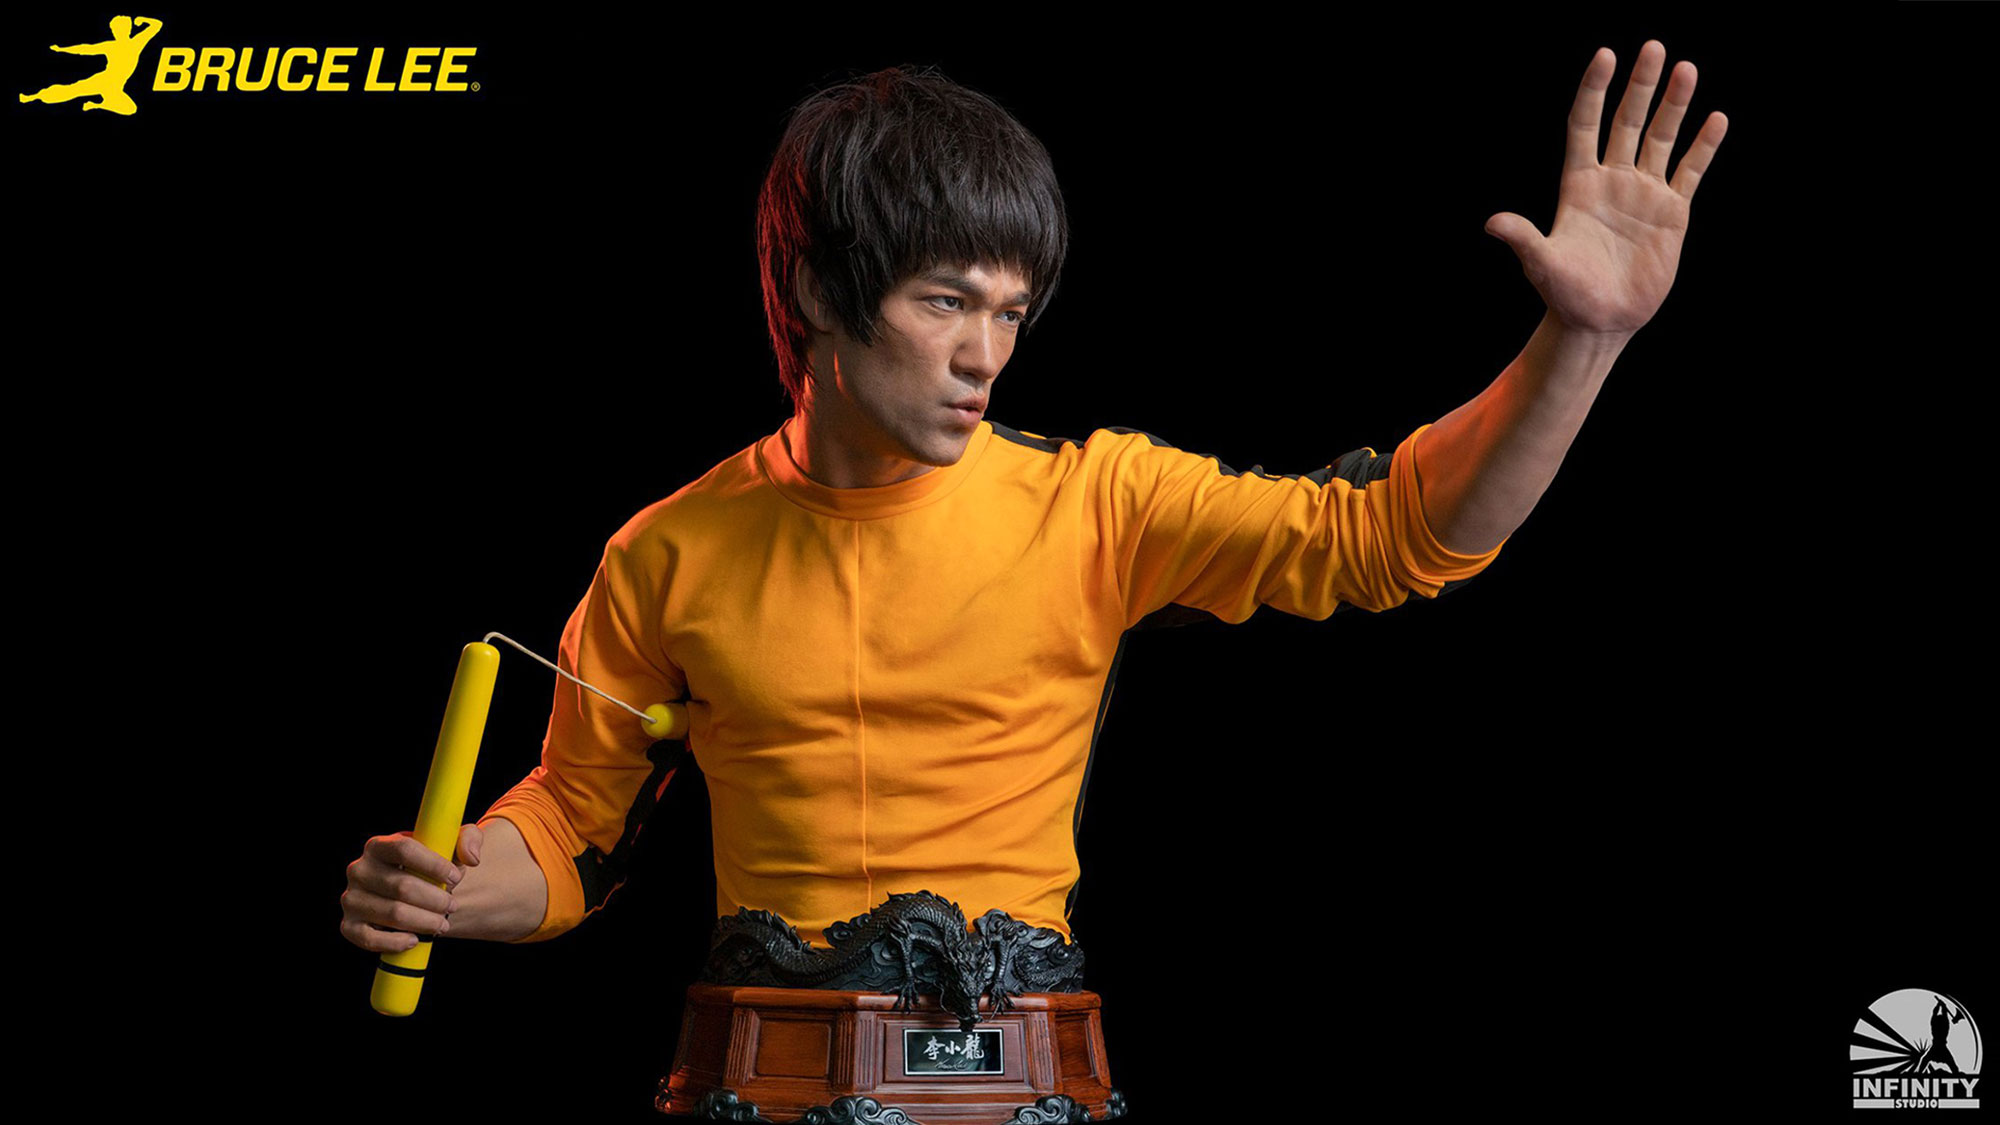 Infinity Studio Bruce Lee Life-size Silicone Bust